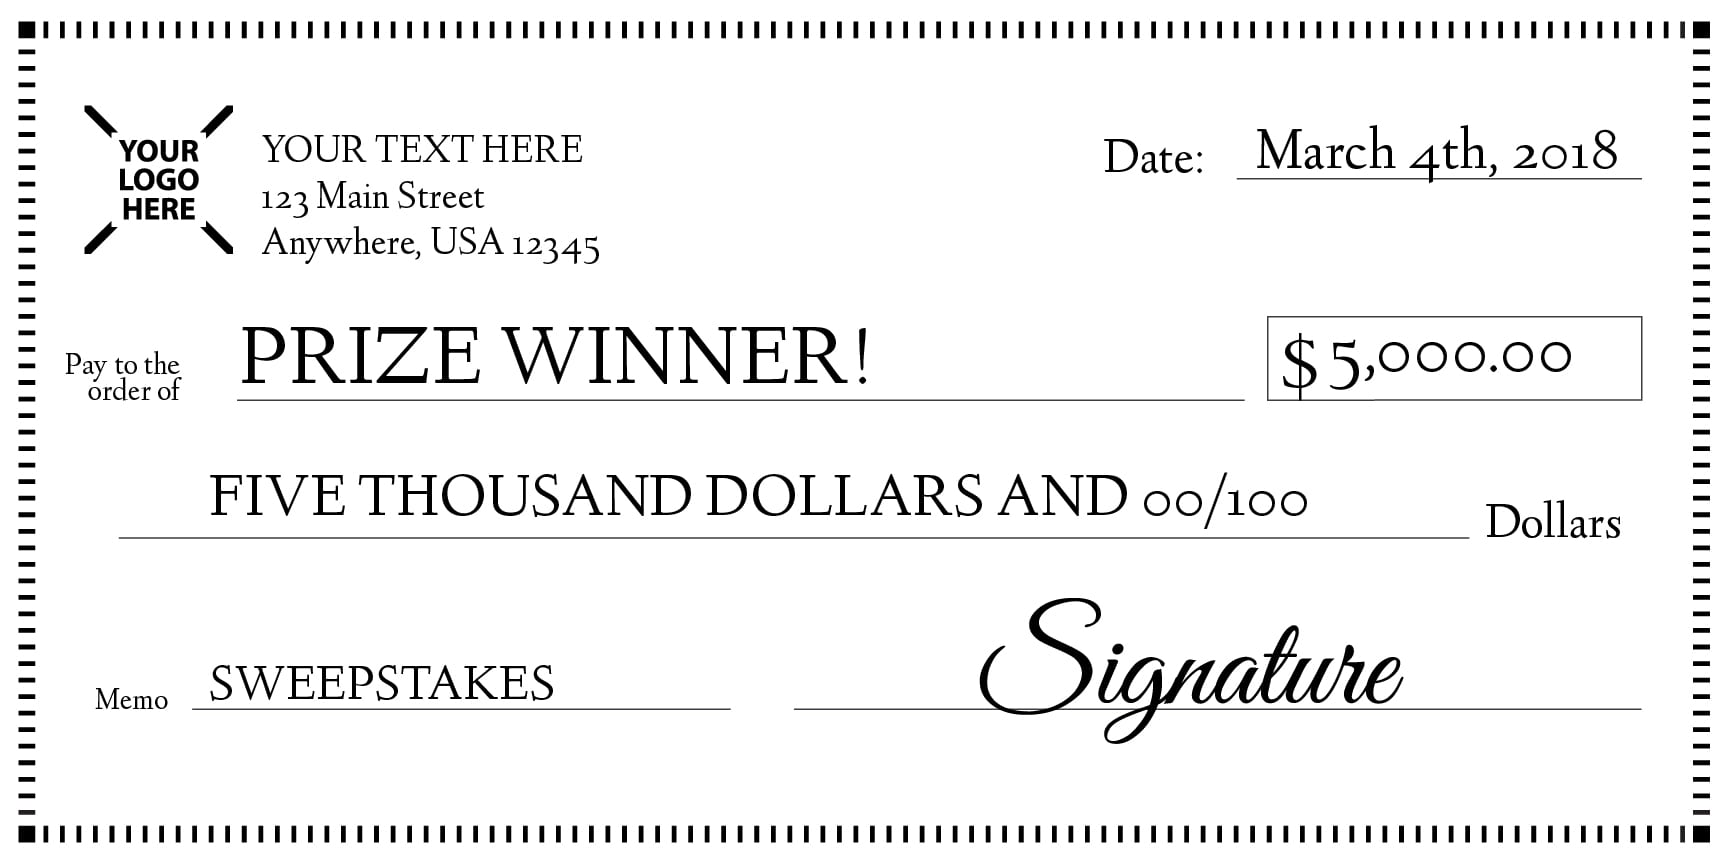 Giant Check Sweepstakes